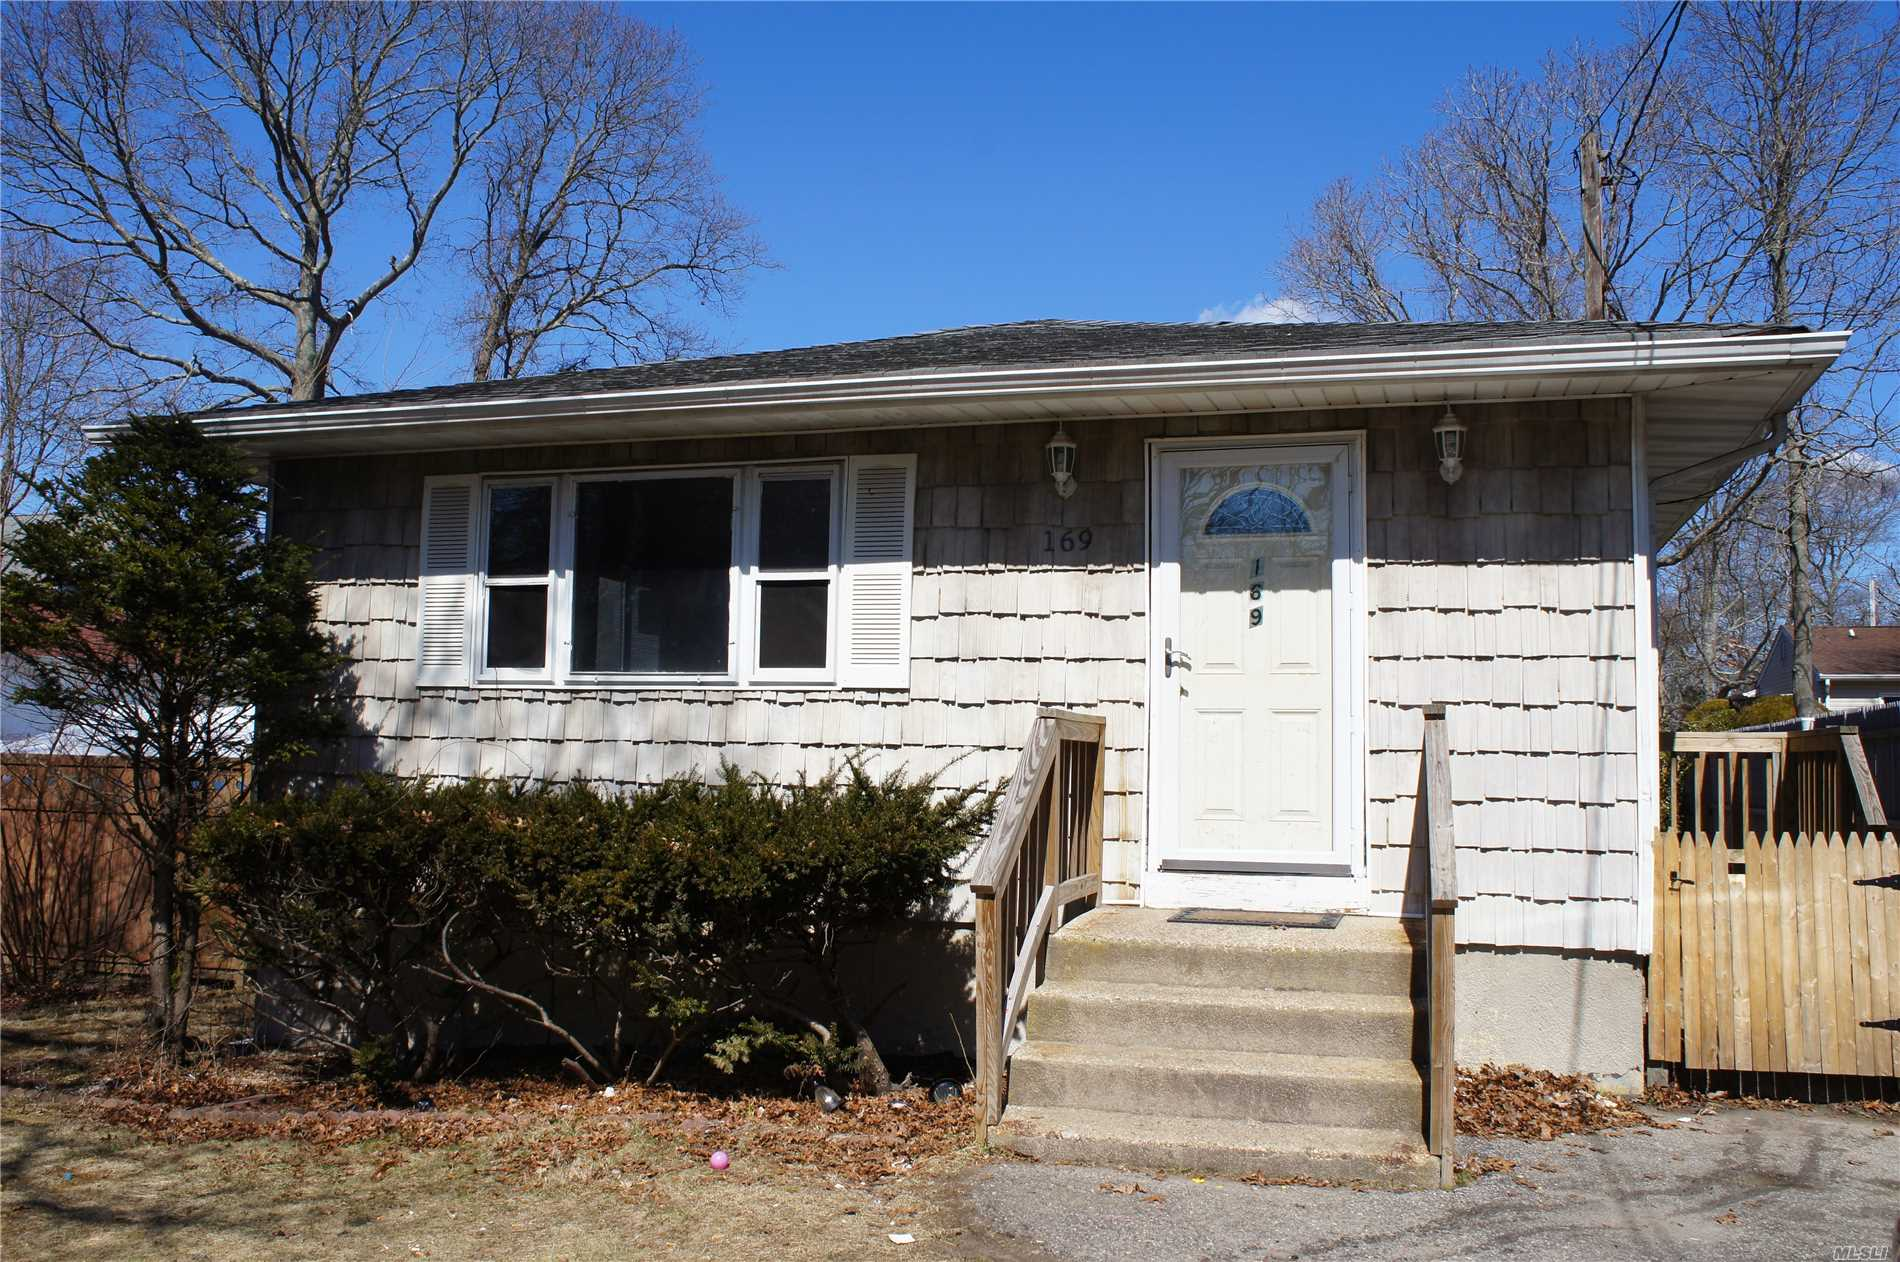 Ranch featuring 3 Bedrooms, 1 Full Bath, Eat in Kitchen, Living Room, Dining Room and Full Basement with Washer/Dryer Hookup